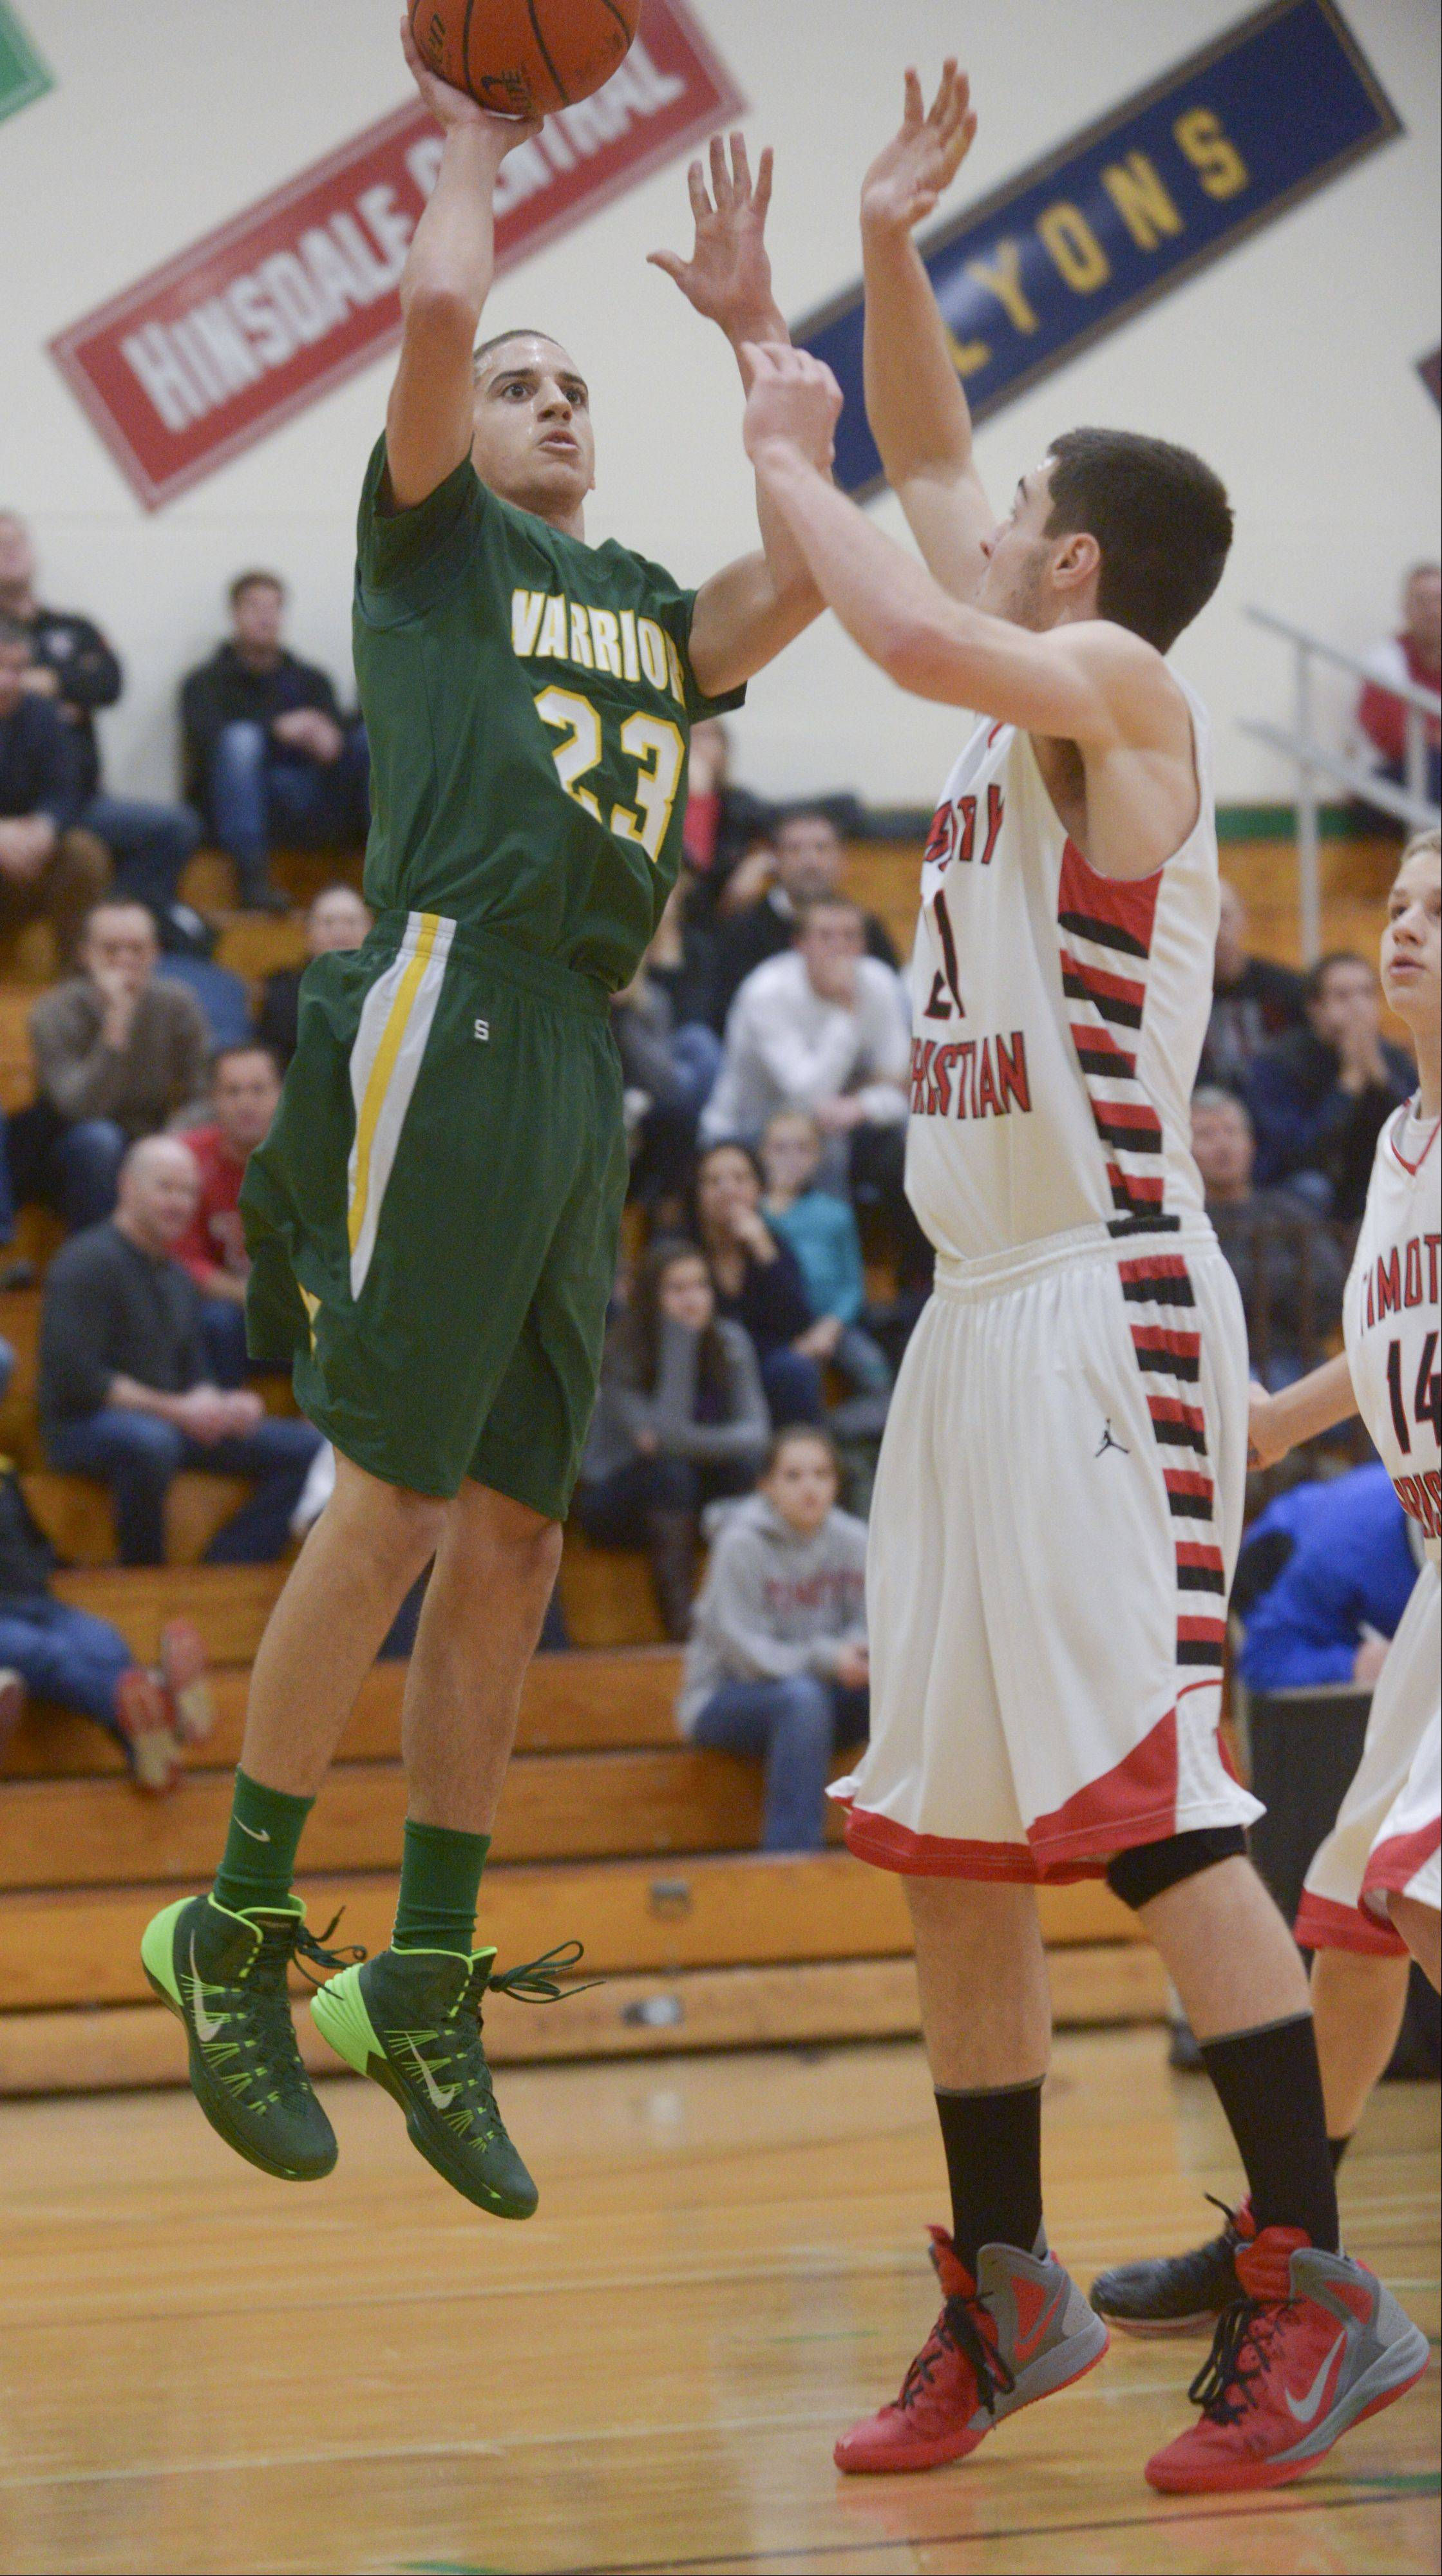 Waubonsie Valley's Jay DeHaan takes a shot over Timothy Christian's Wes Ditchfield during the Jack Tosh Holiday Classic at York High School Monday.